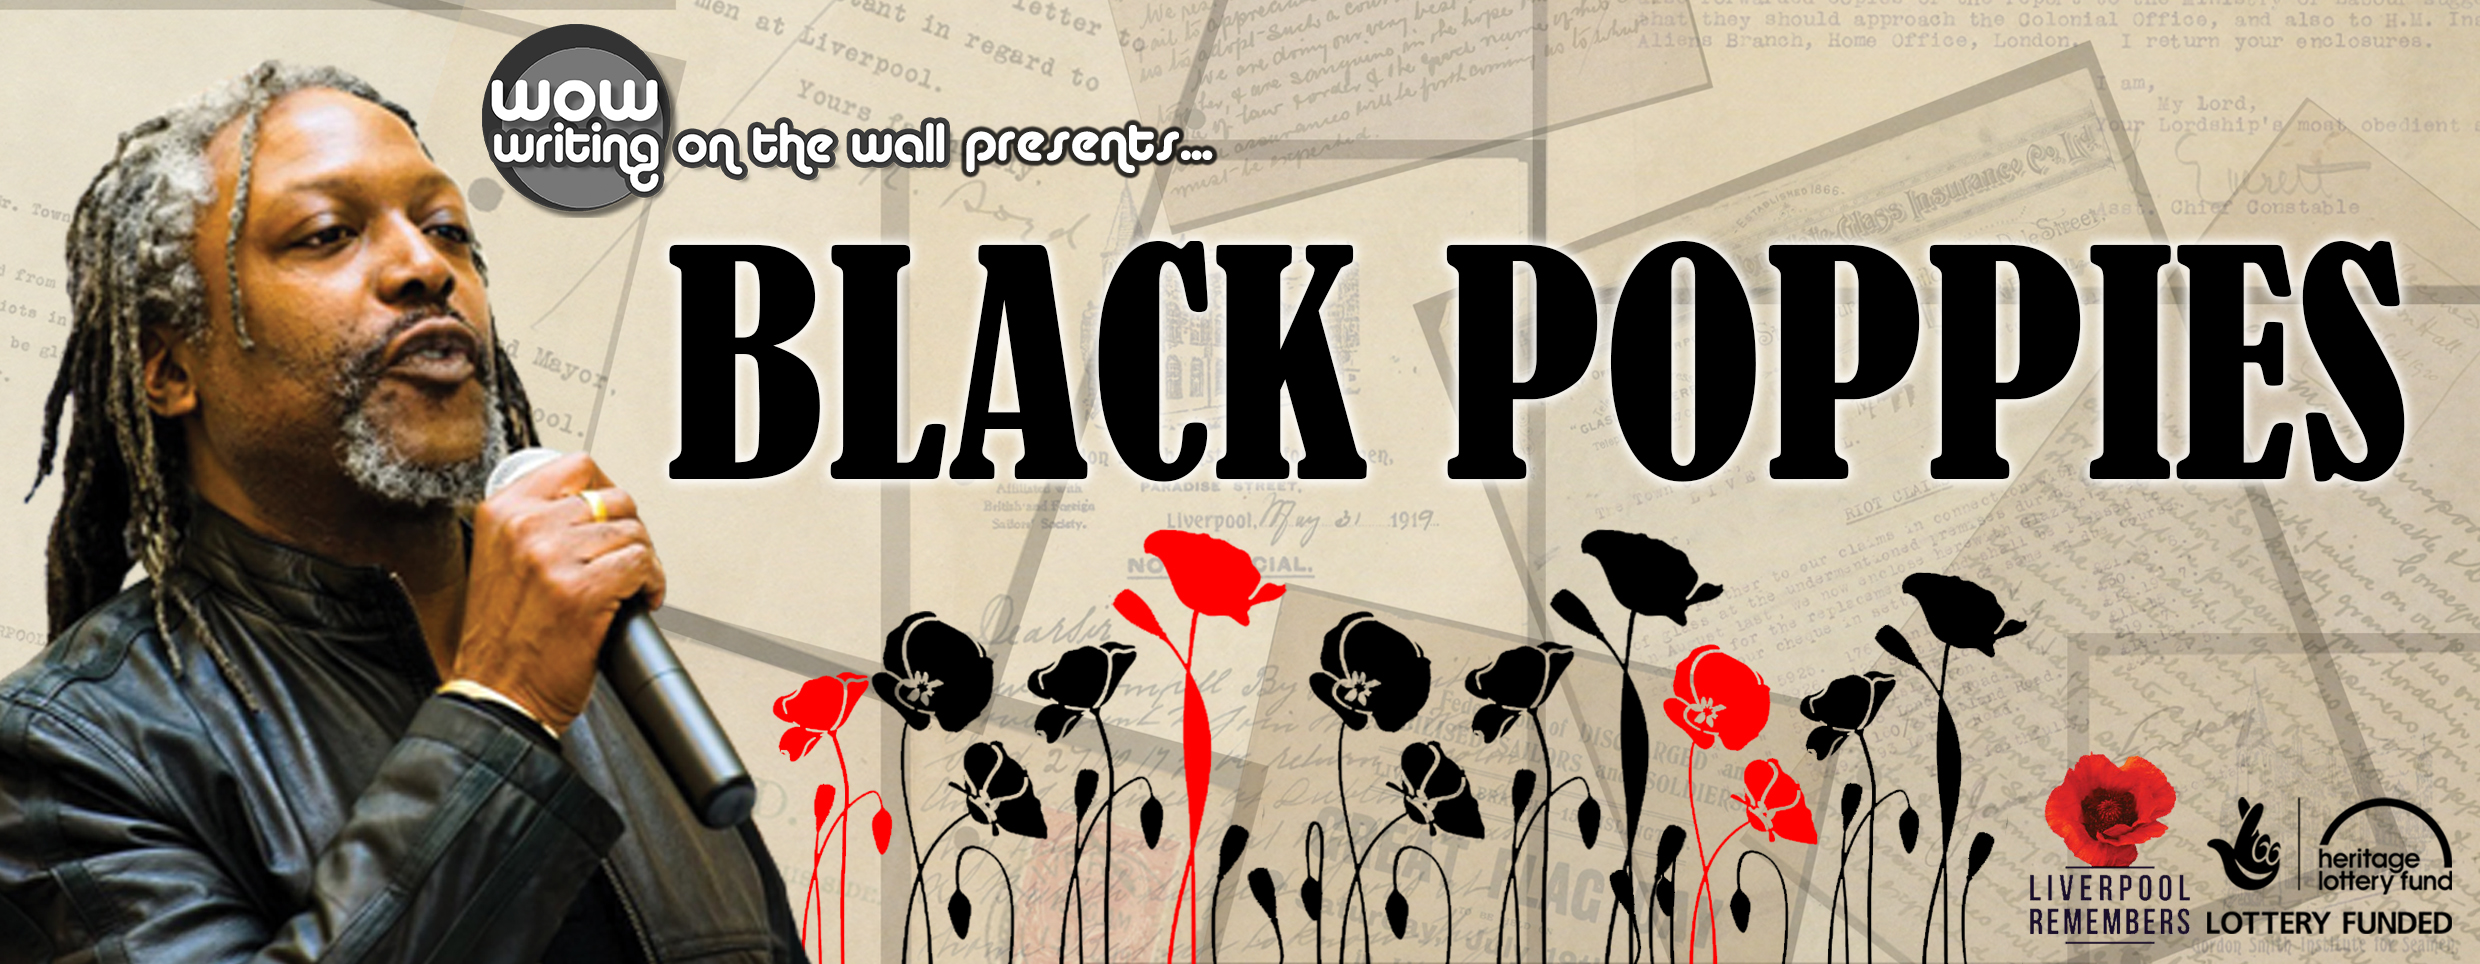 BLACK POPPIES   Writing on the Wall presented a fascinating archive of letters and documents highlighting the plight of black soldiers, seafarers, and workers in Liverpool following demobilisation in 1919. This archive contains testimony from men from the Caribbean, West Africa and other colonial territories, who had fought for England on land and at sea during the Great War and were then left stranded, destitute and subject to racial violence on the streets of Liverpool. As part of the Weeping Window experience, Writing on the Wall invited members of the public to join internationally renowned poet Levi Tafari in exploring the lives of these men and their families and to respond creatively through story-telling and poetry. These creative writing workshops included a guided tour of the archive. The project also involved creating ceramic black poppies with visual artist Faith Bebbington which were exhibited at Liverpool's Central Library and toured venues around the city. The project attracted media attention nationally.